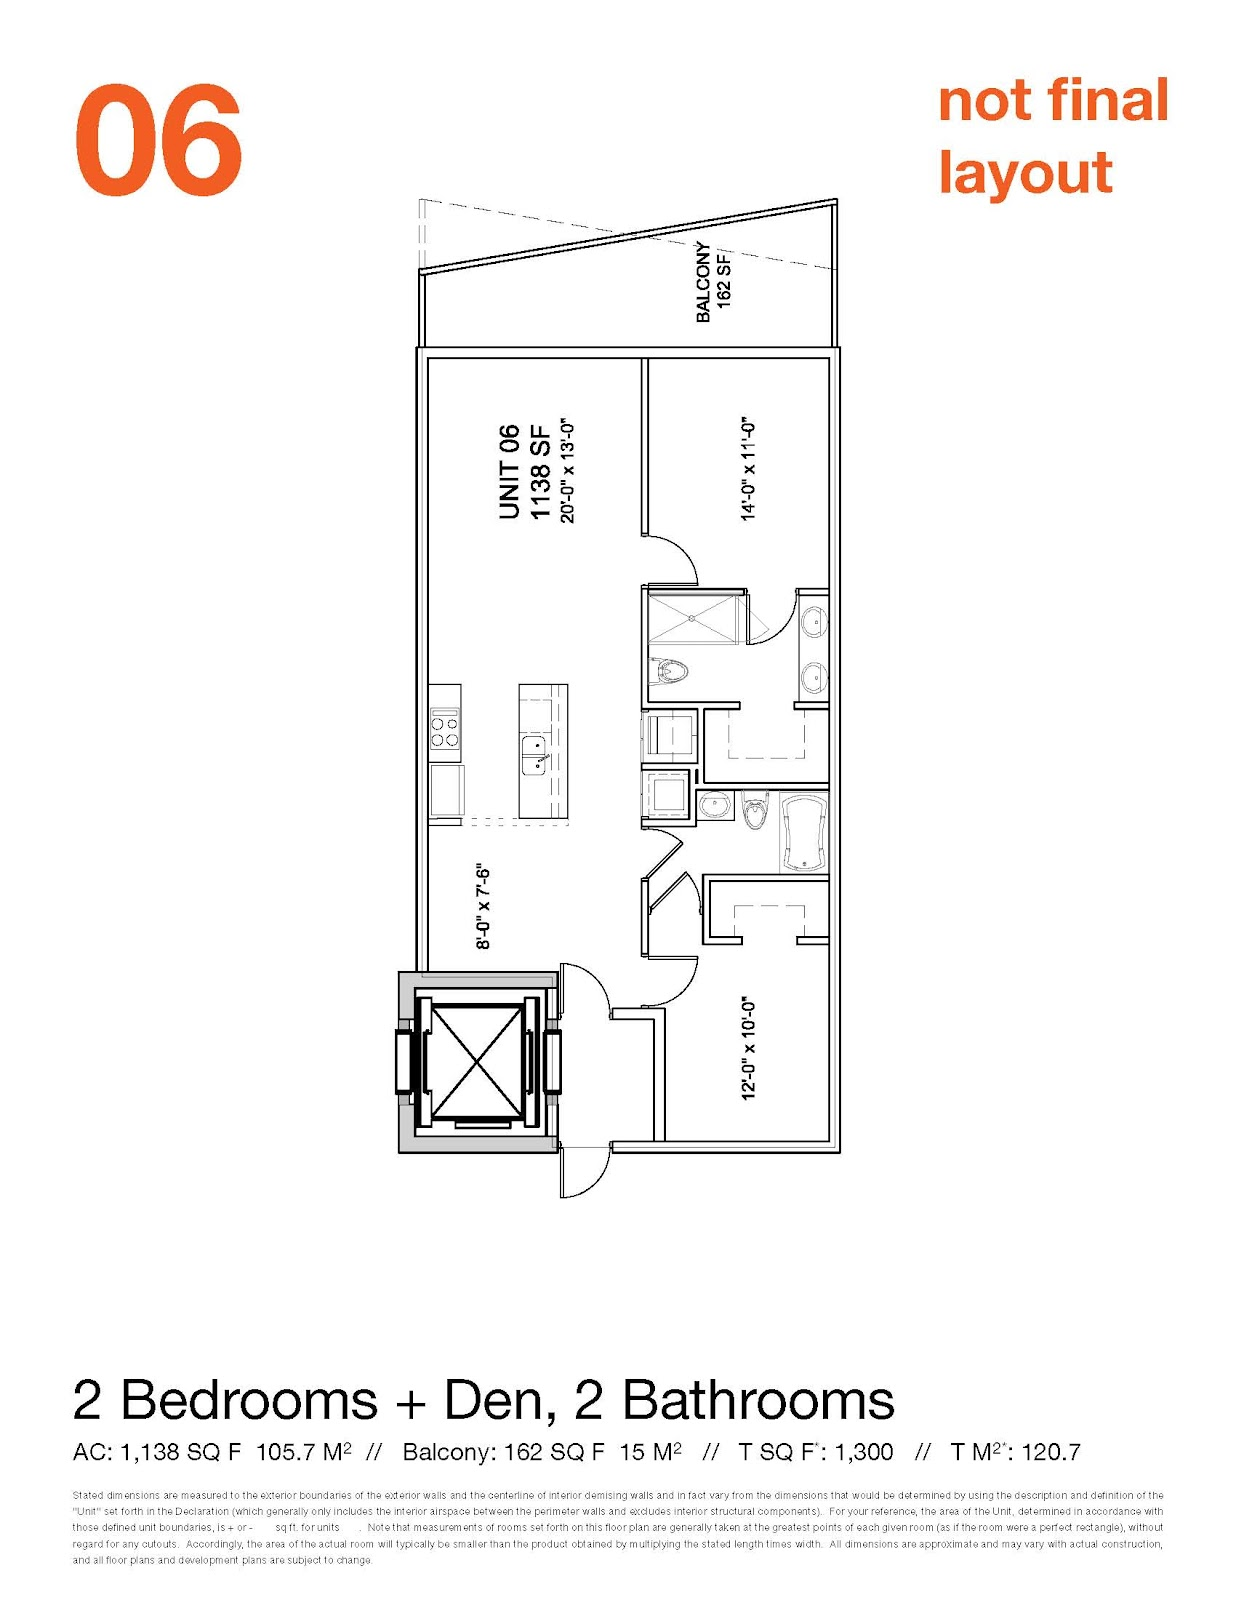 Miami riches real estate blog icon bay floorplans and for Floor plans quantum bay